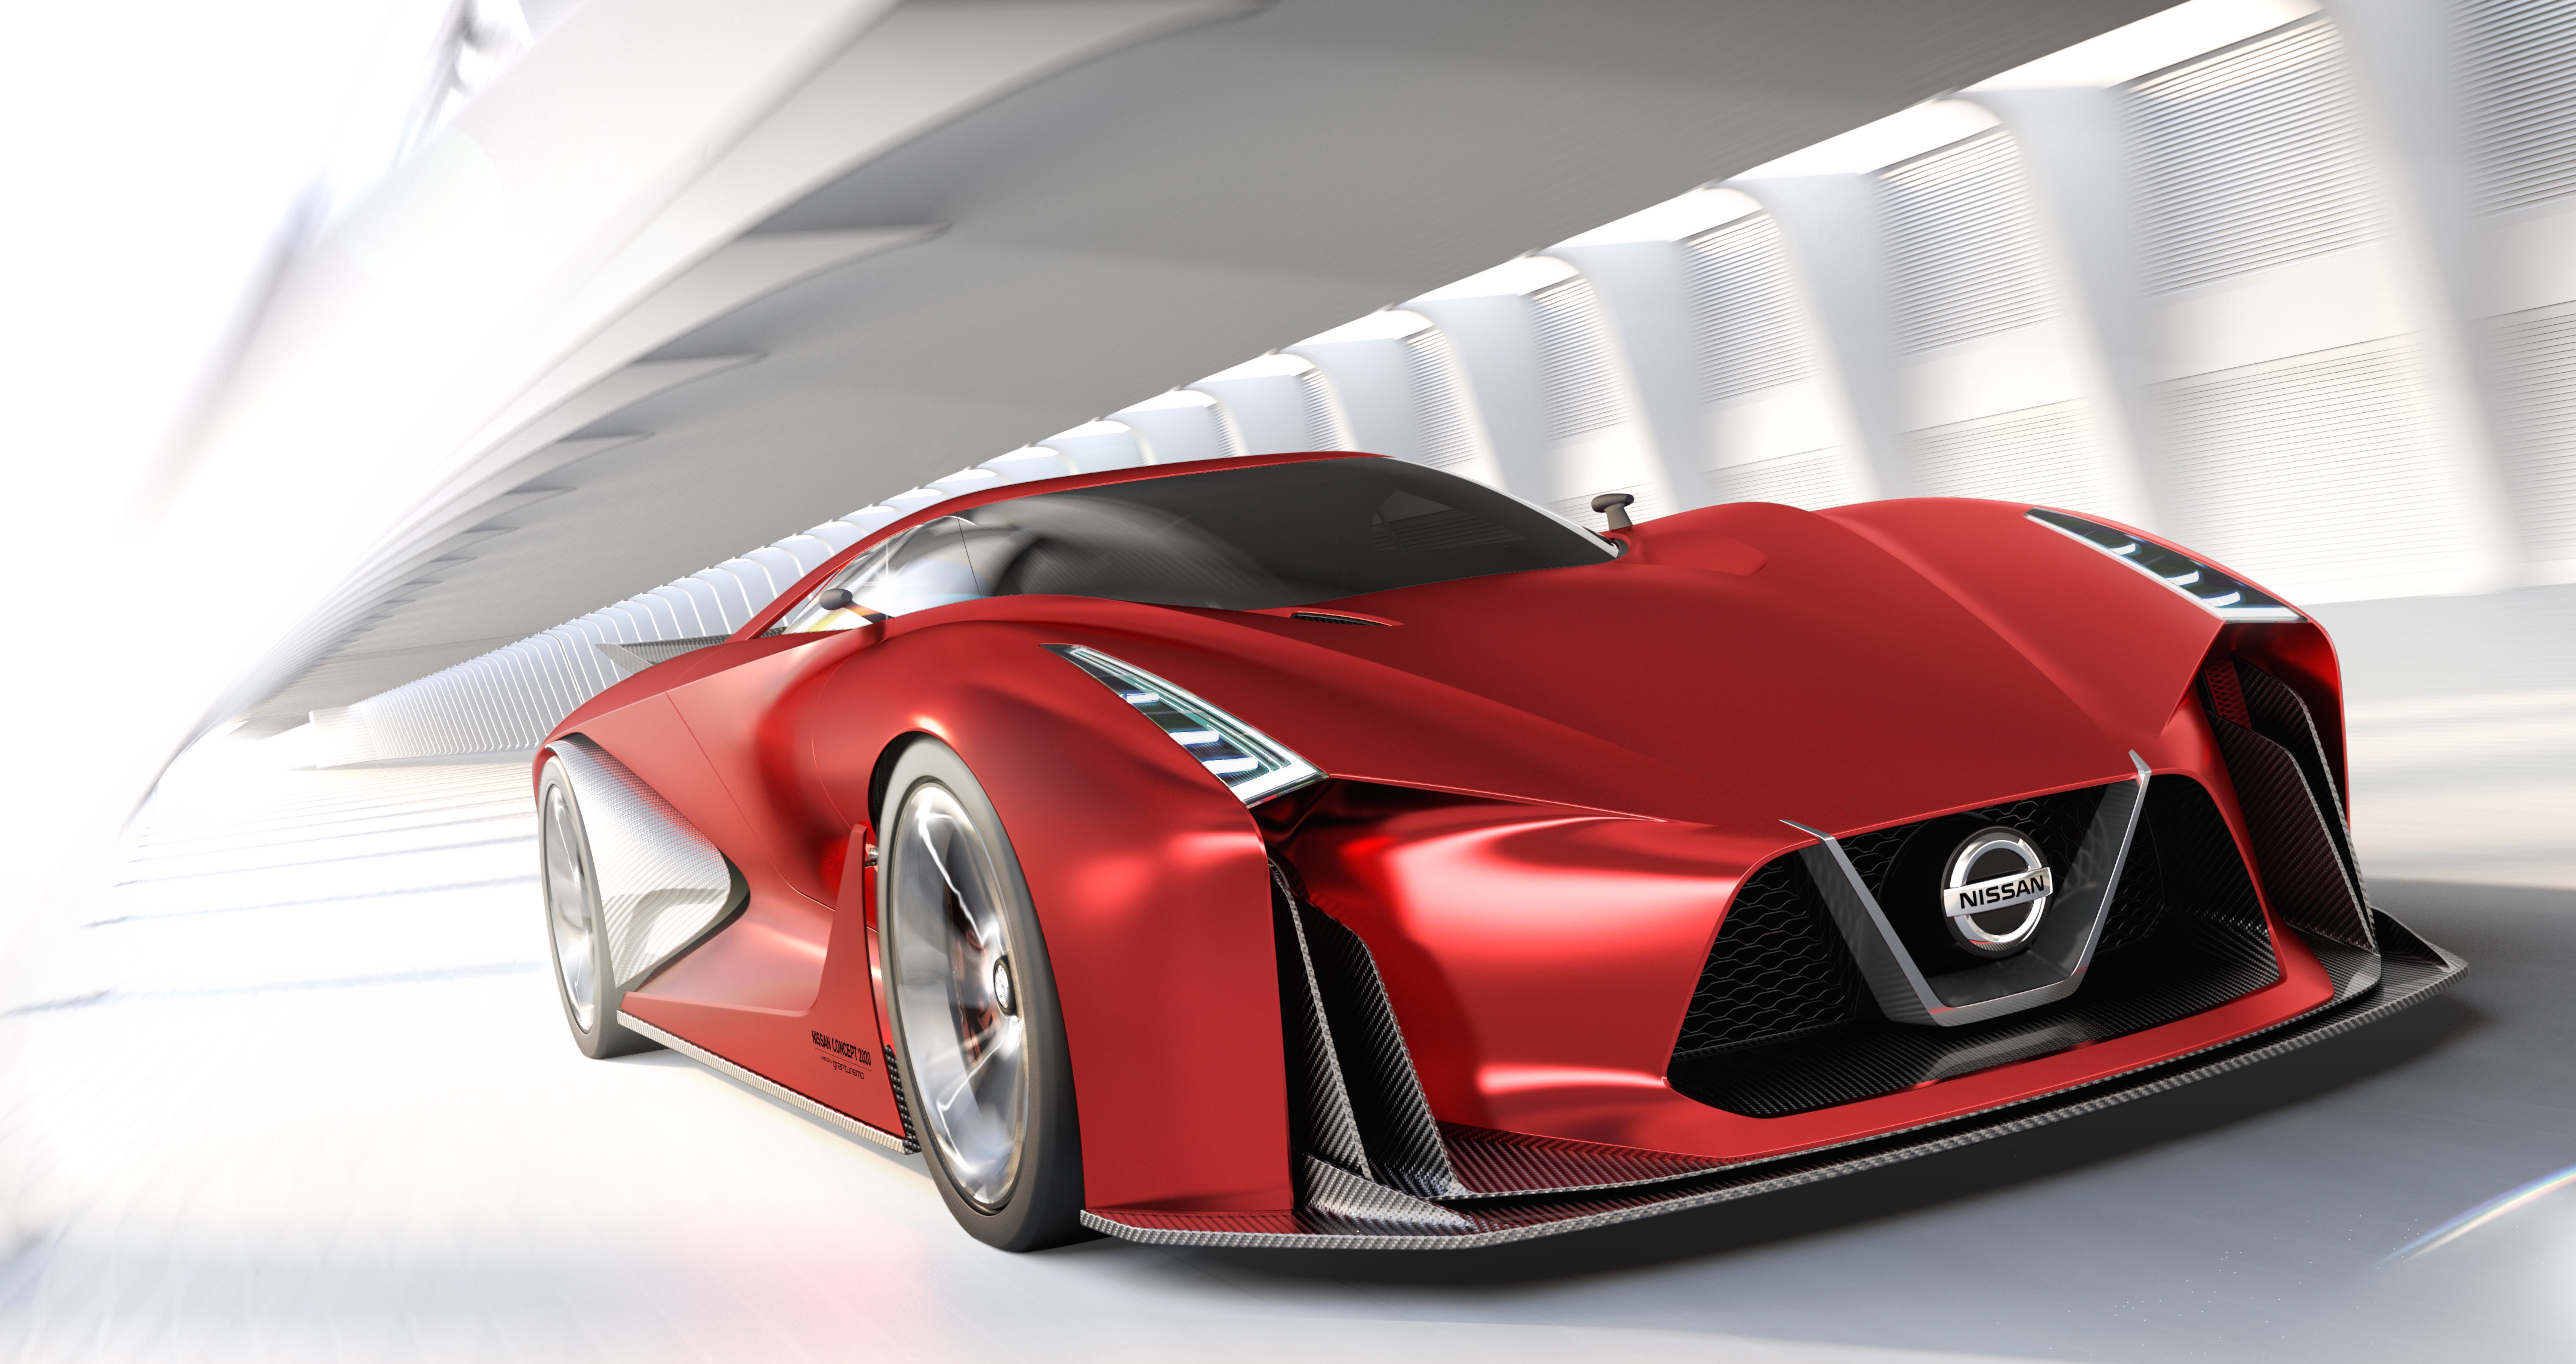 Nissan 2018 >> Nissan Concept 2020 Vision Gran Turismo – hot in red Paul Tan - Image 388119